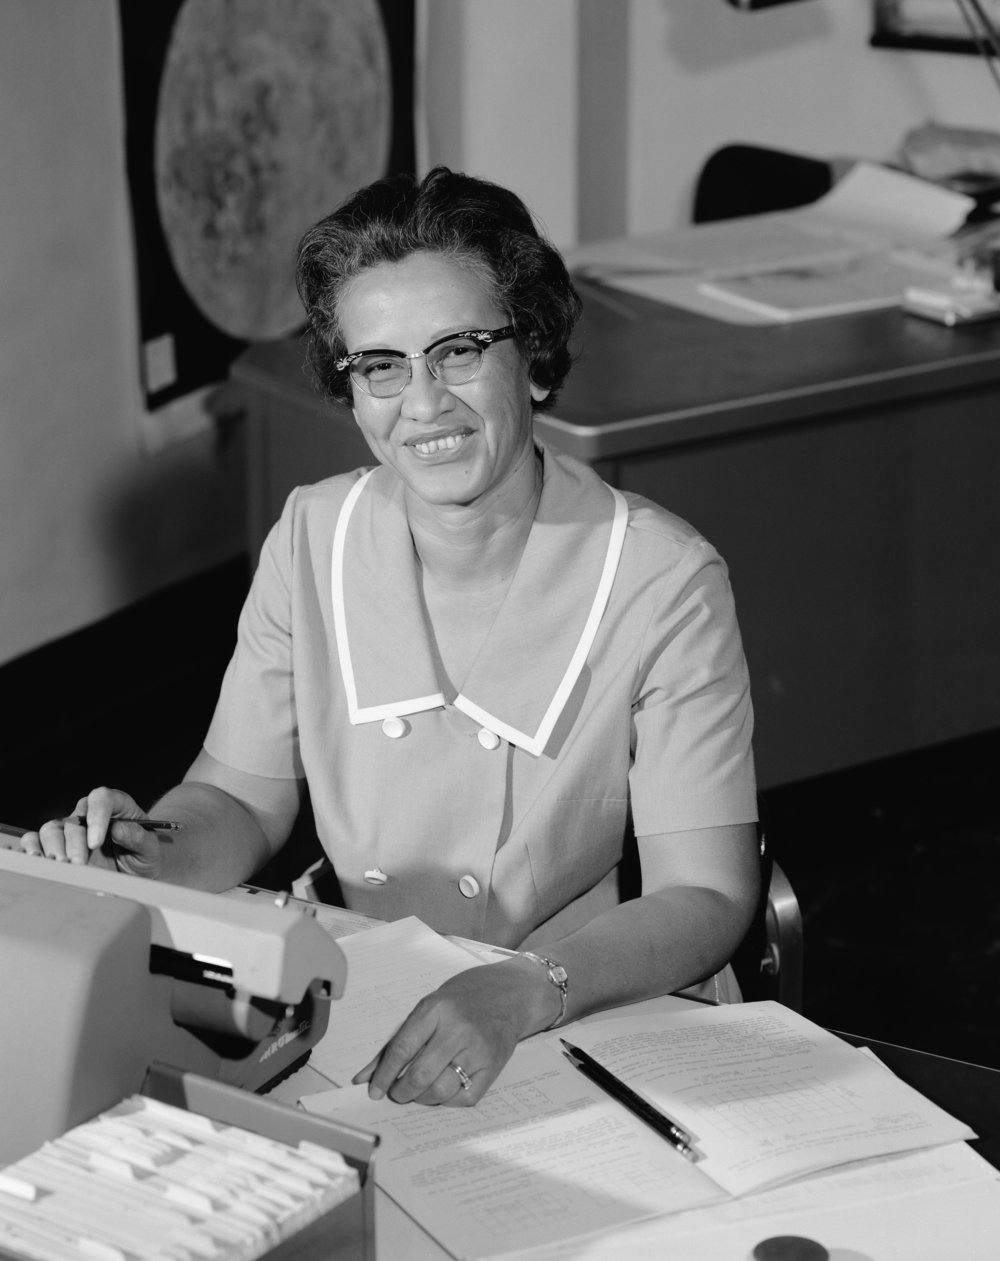 Katherine_Johnson_at_NASA,_in_1966.jpg